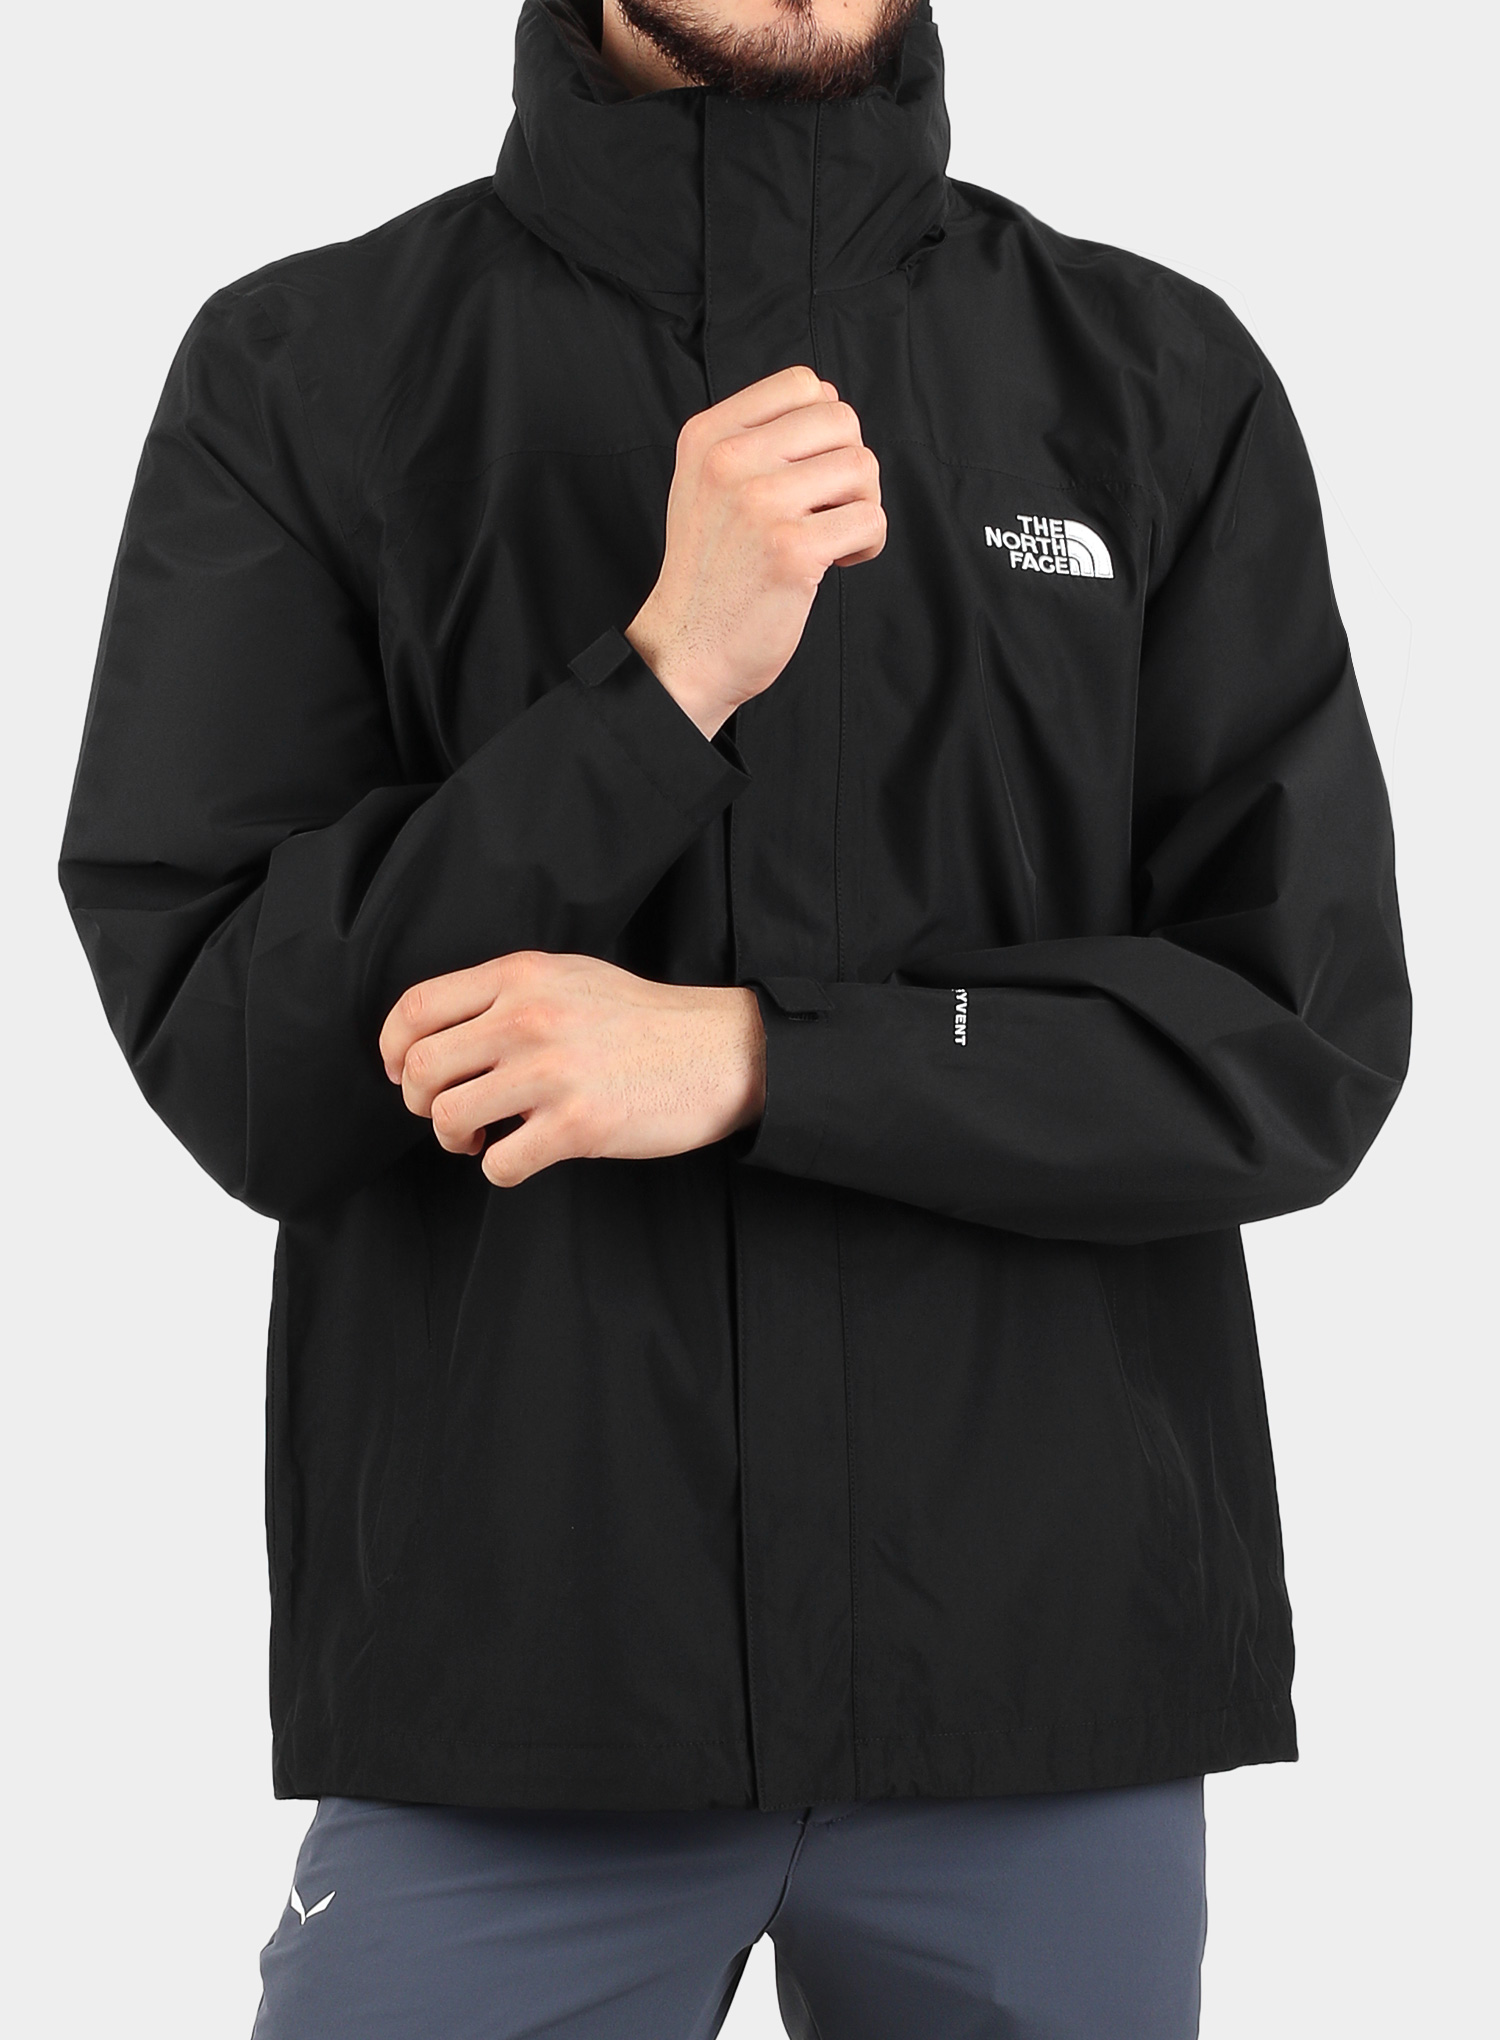 Kurtka The North Face Sangro Jacket - black - zdjęcie nr. 8